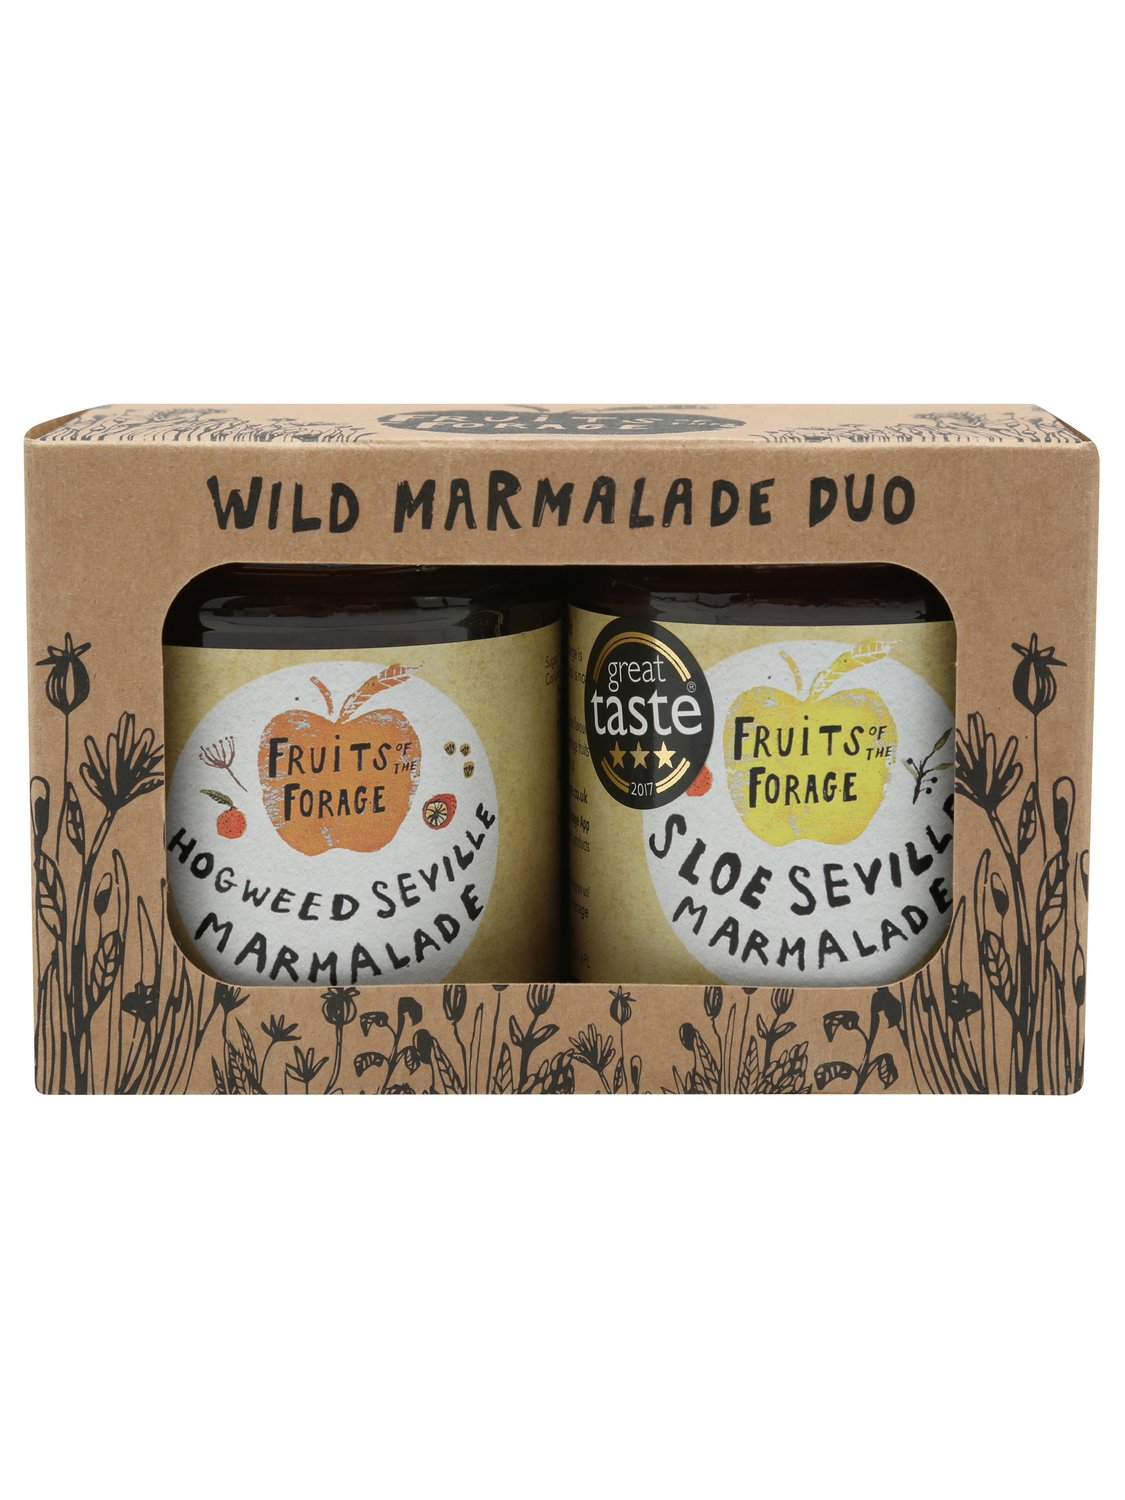 fruits of the forage wild marmalade duo gift set box award winning marmalade  - cream